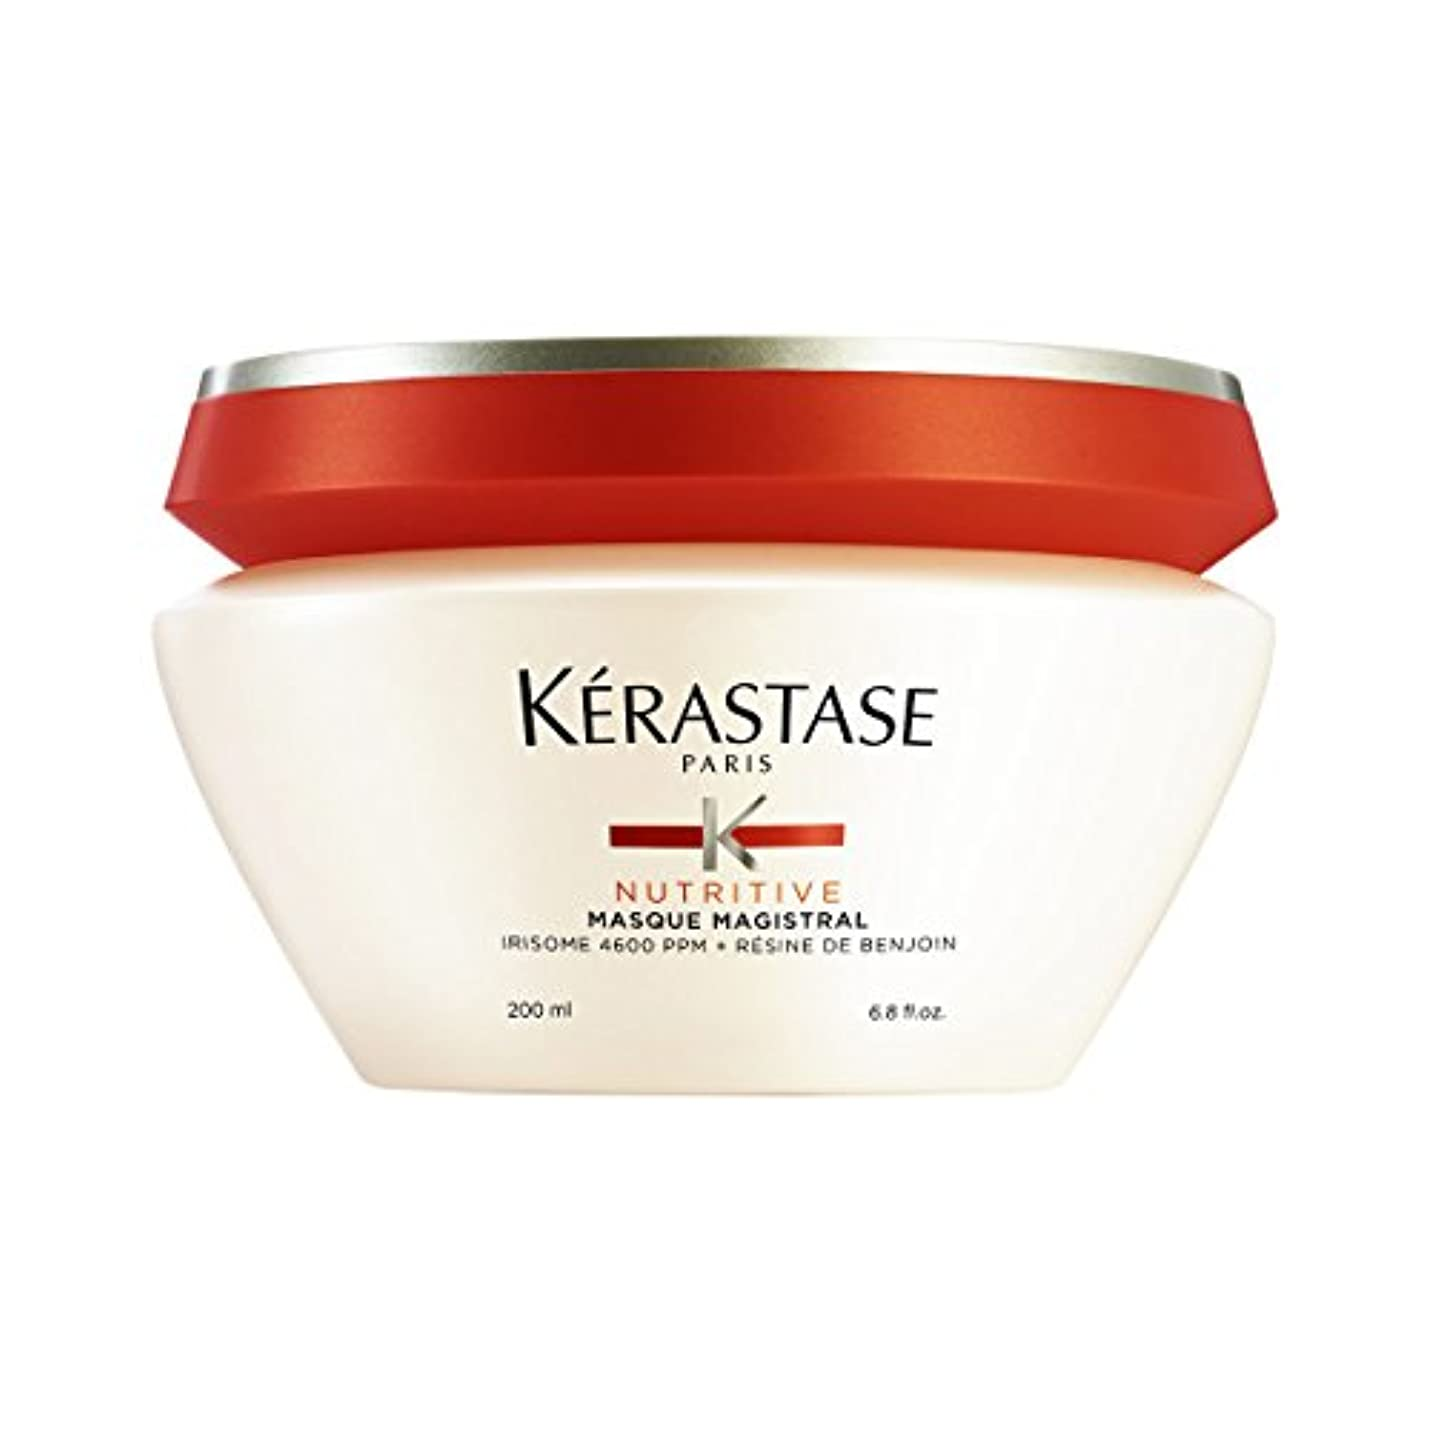 K駻astase Nutritive Masque Magistral Hair Mask 200ml [並行輸入品]